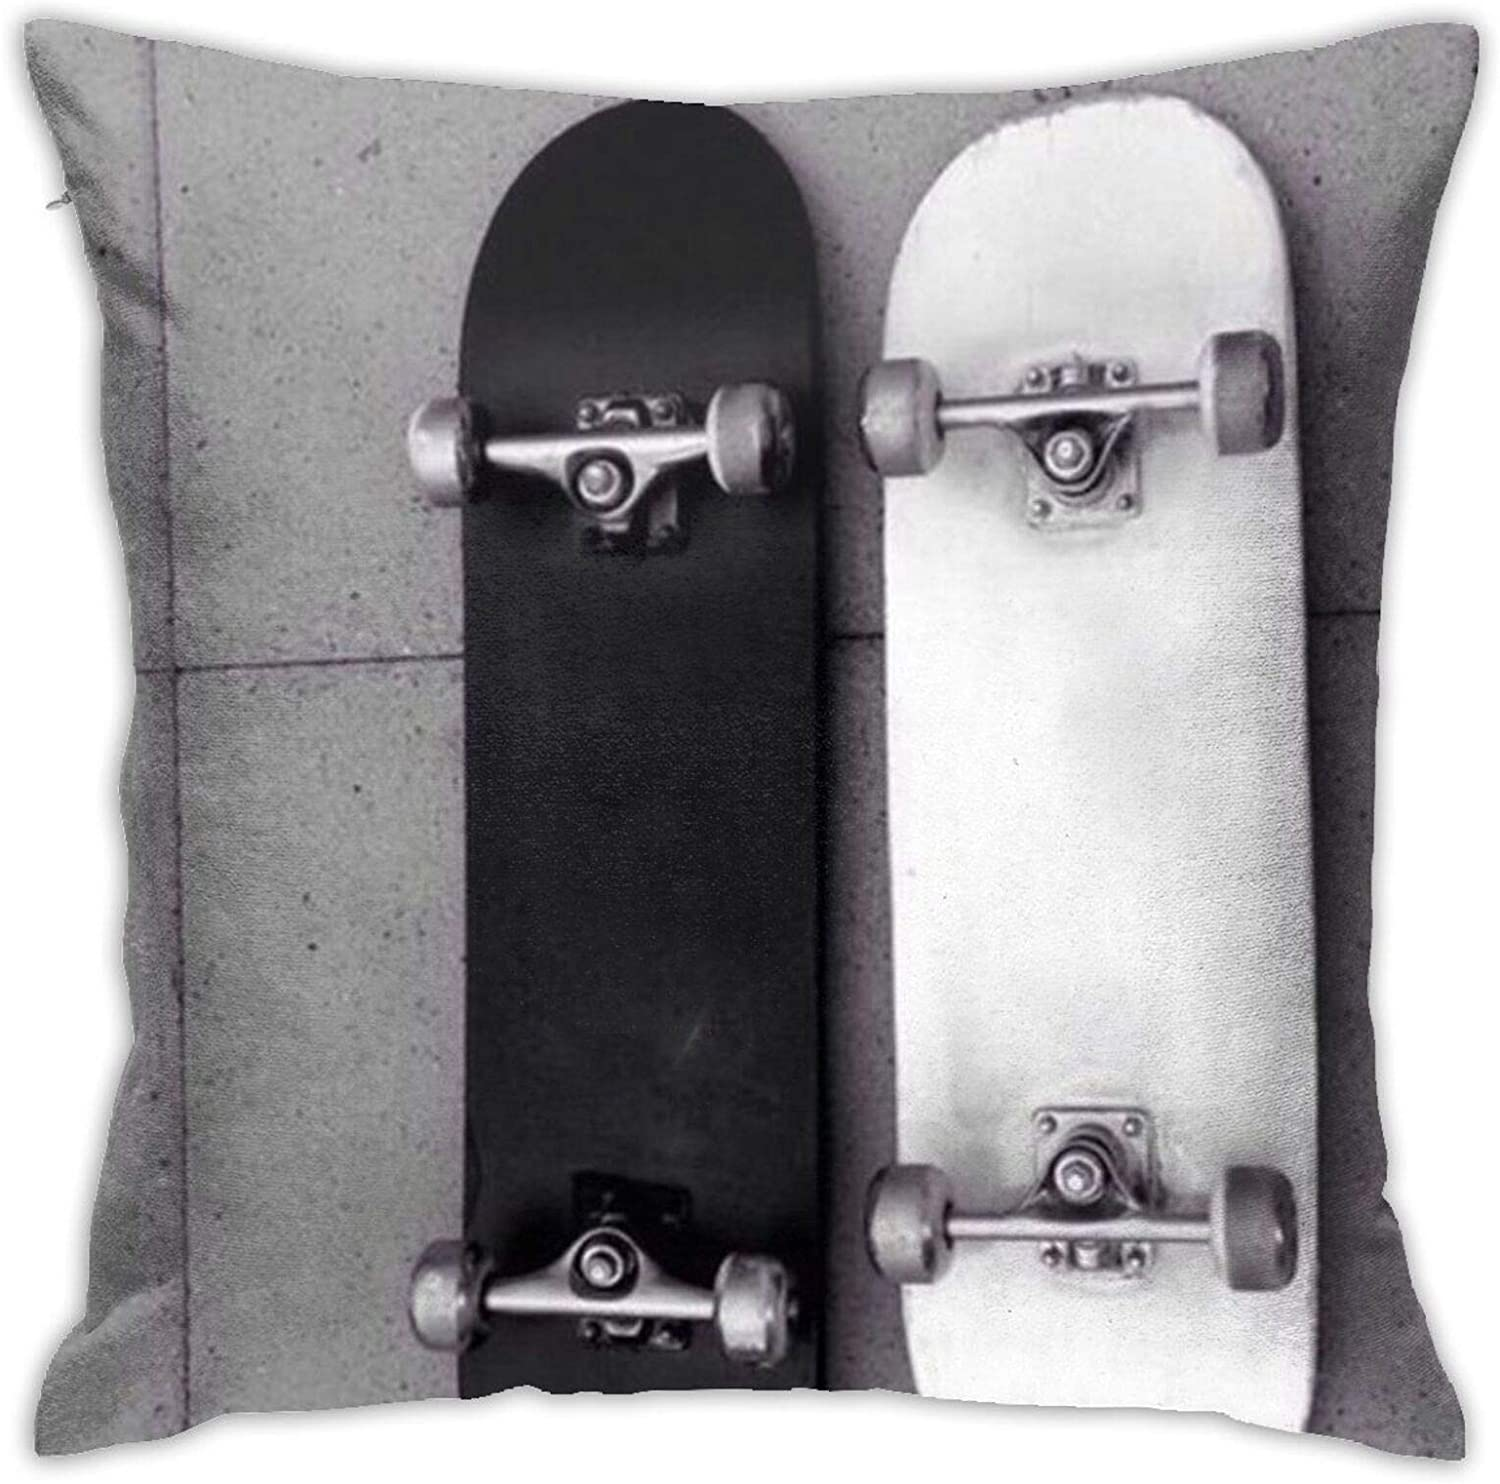 Pillow Covers 18x18inch, Skateboard Pillow Cases Square Cushion Cover Home Sofa Bedroom Decorative